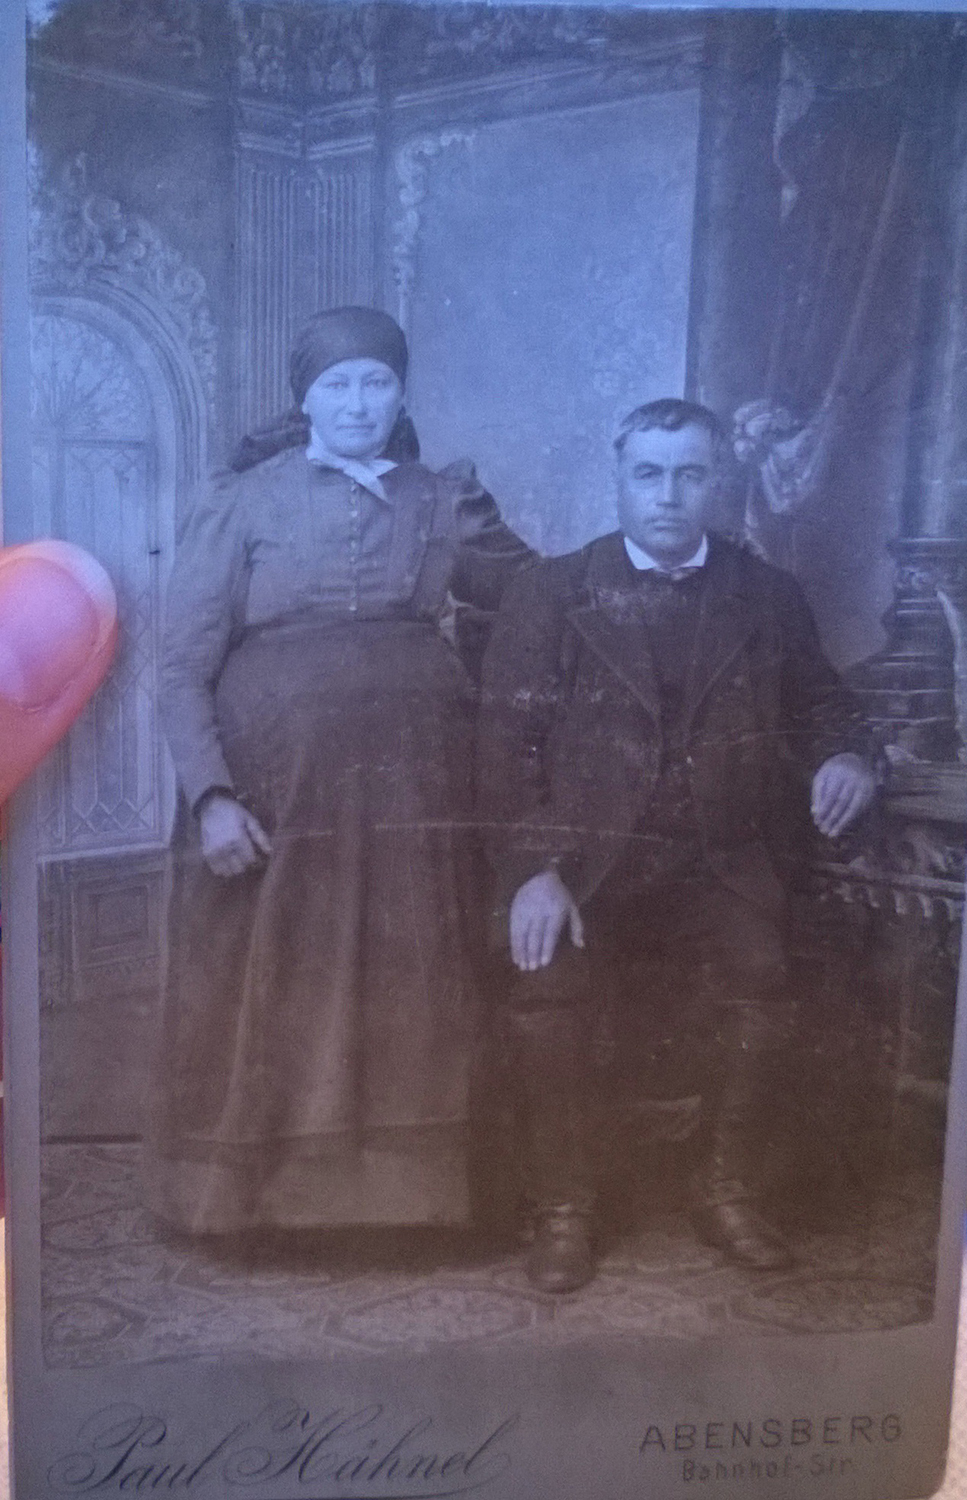 Great-great grandma and grandpa